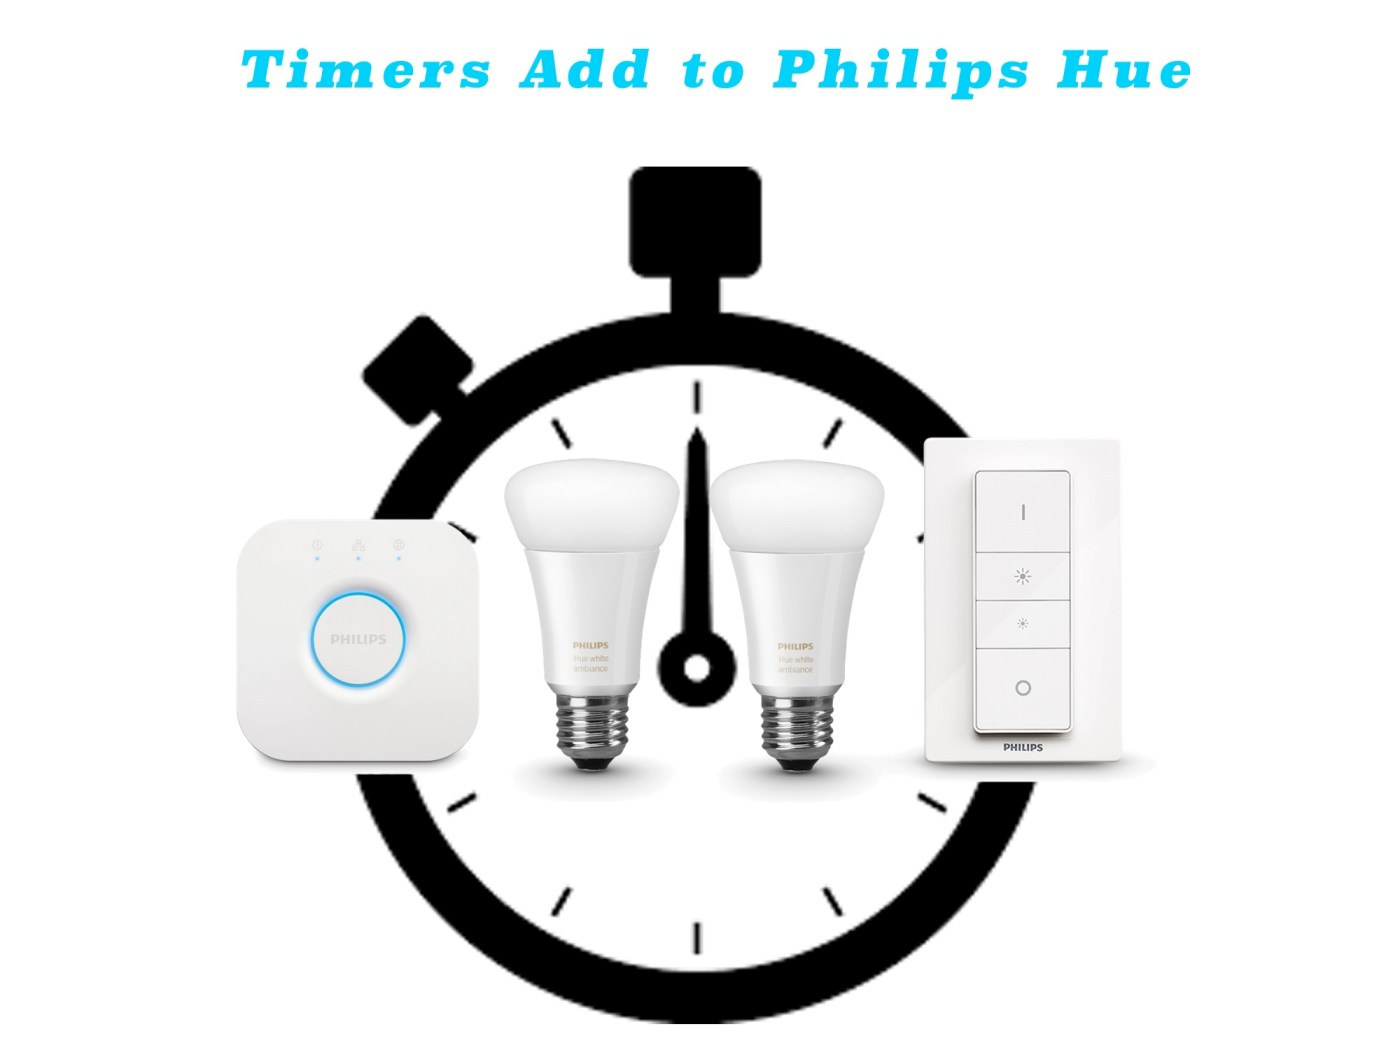 Philips Hue Update for iOS Adds Timer Support